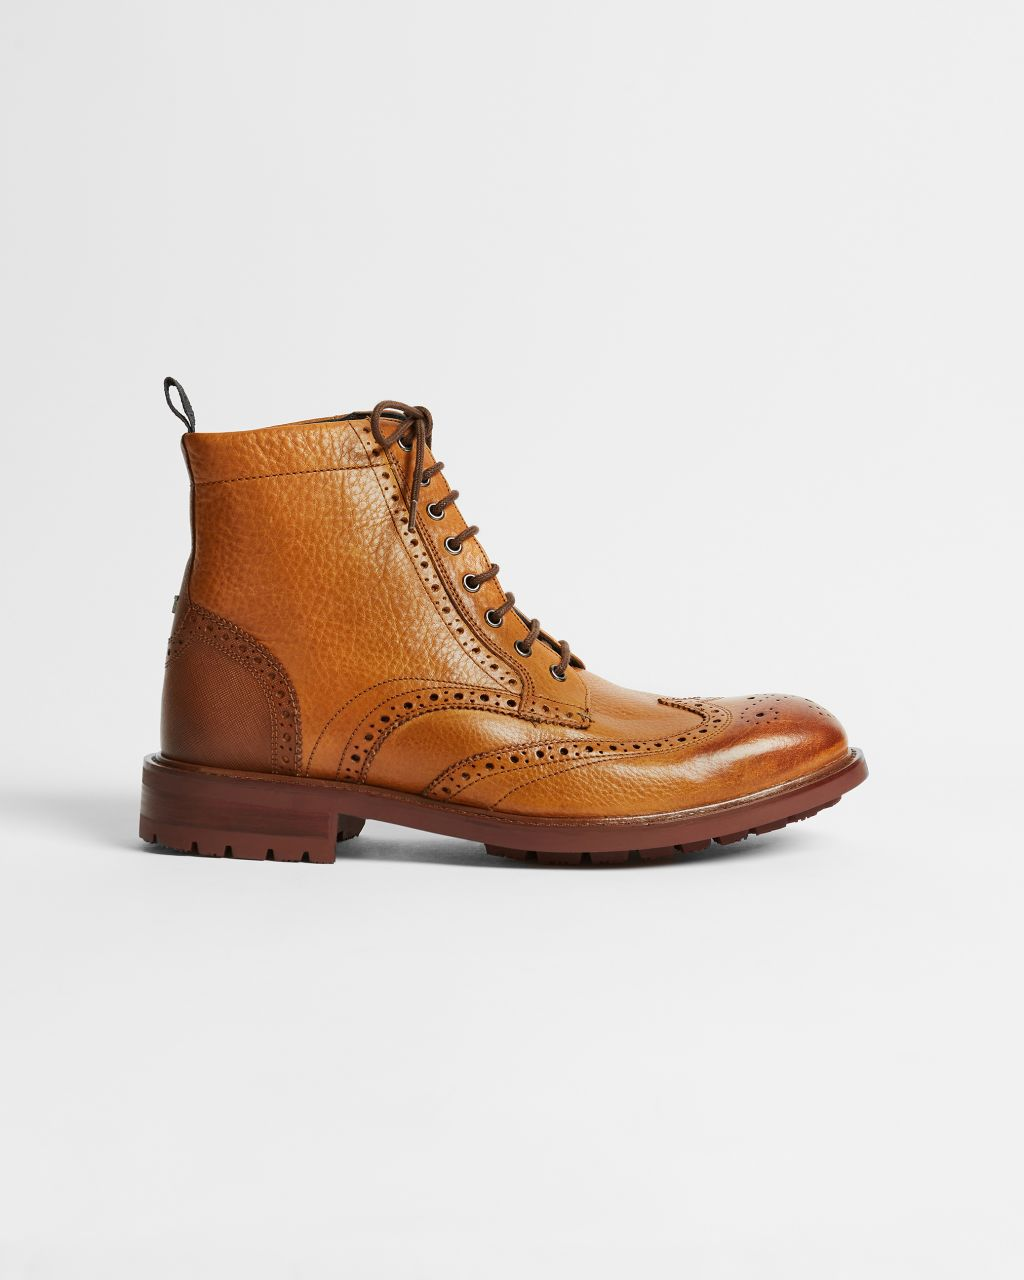 TED BAKER Lace-up Leather Boots   TED BAKER SALE